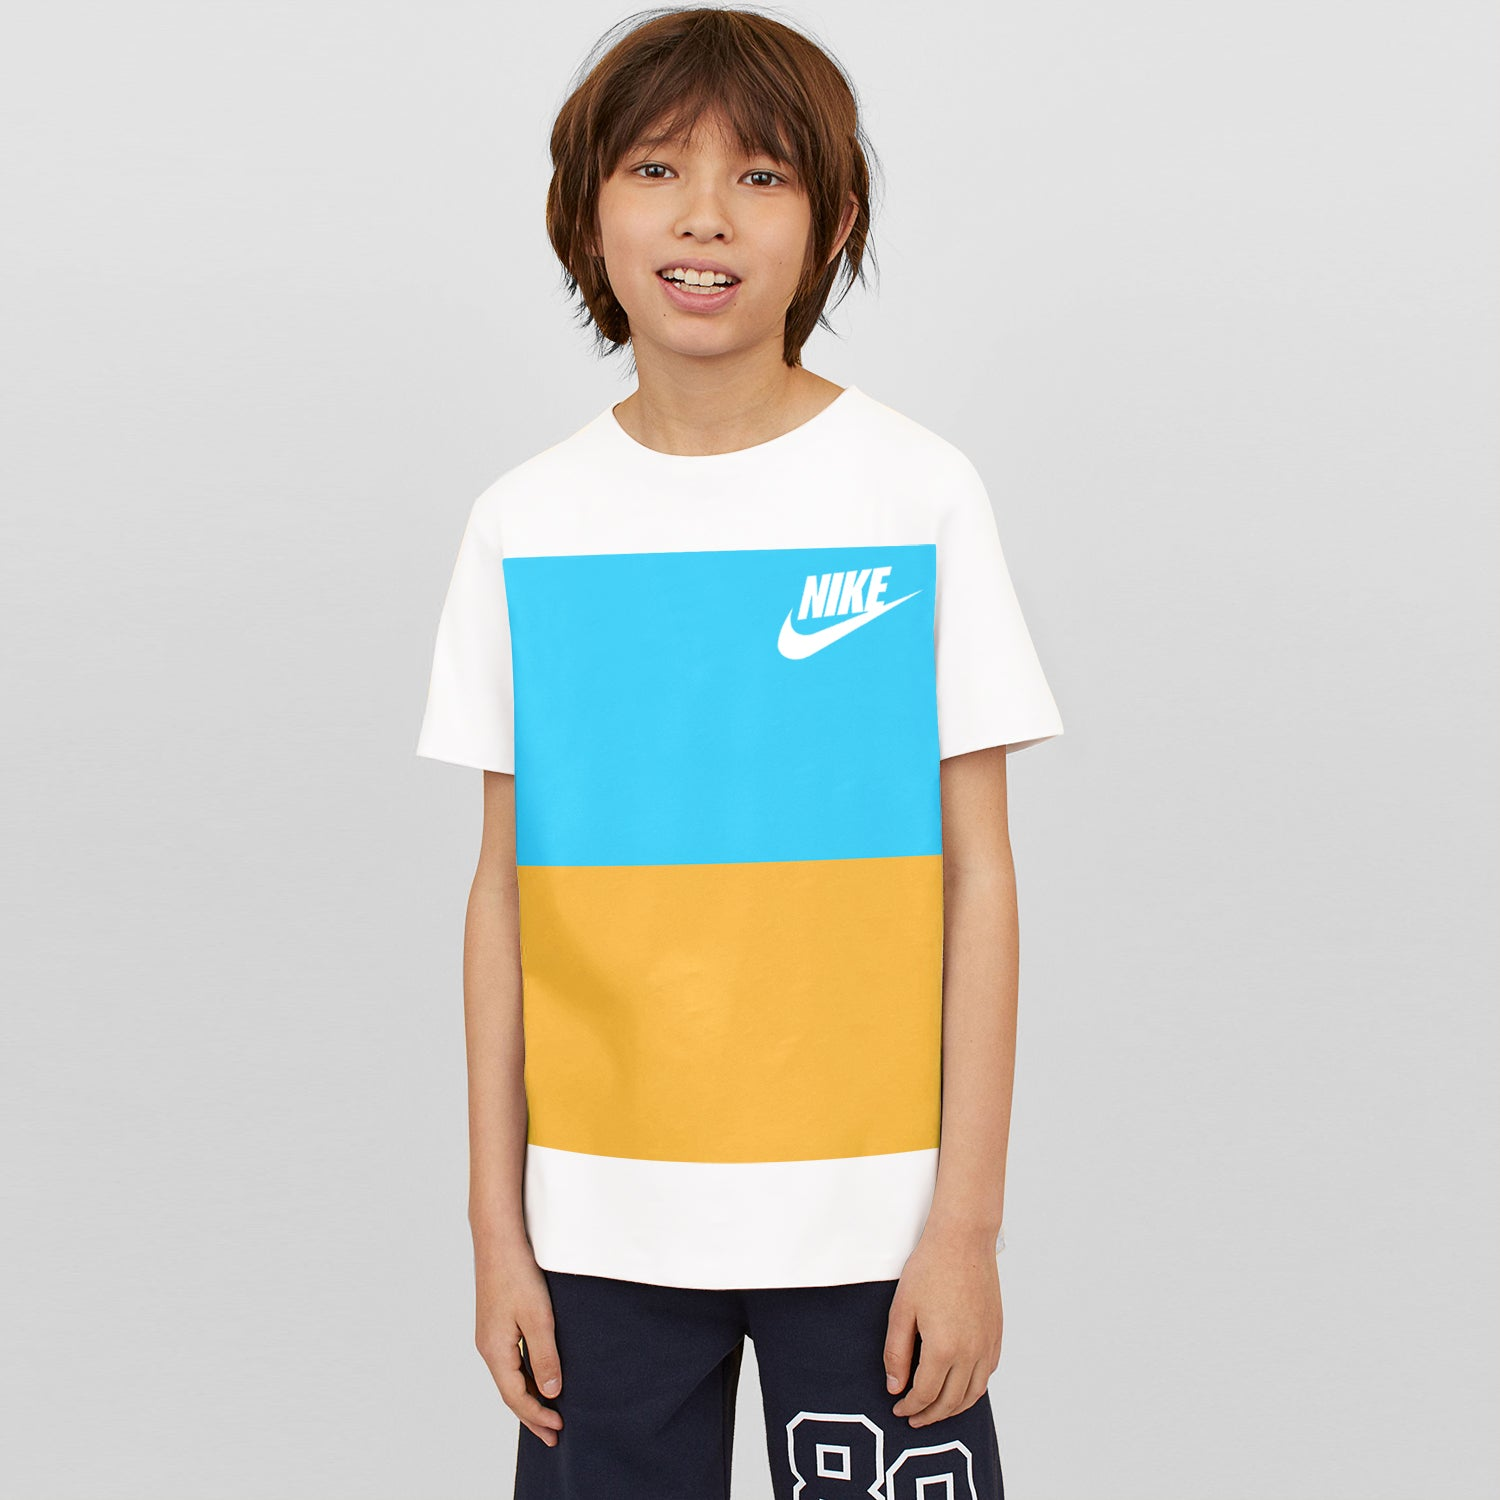 NK Crew Neck Single Jersey Short Sleeve Long Tee Shirt For Boys-White with Cyan Green & Yellow Panels-BE11964